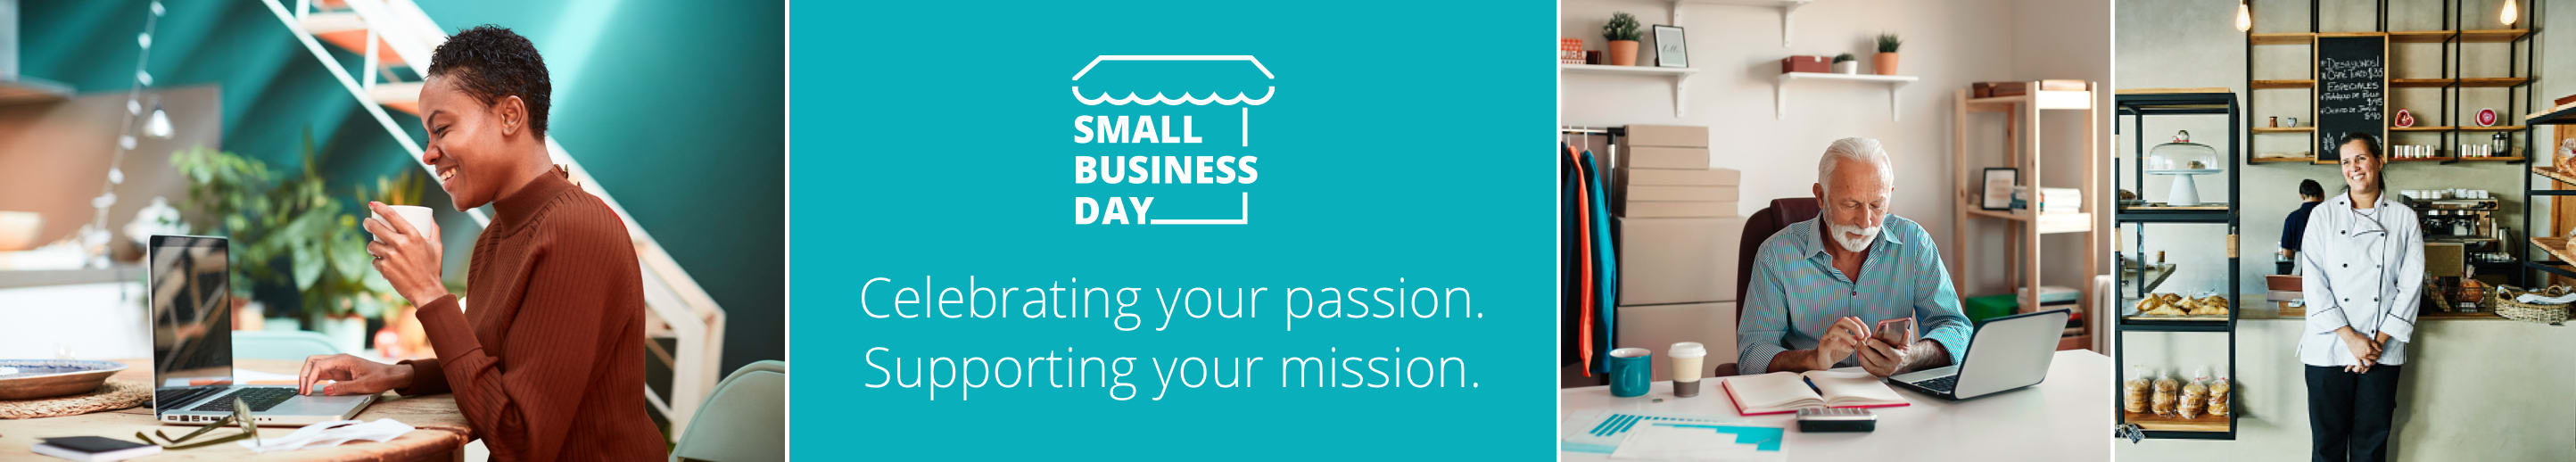 Small Business Day. Celebrating your passion. Supporting your mission